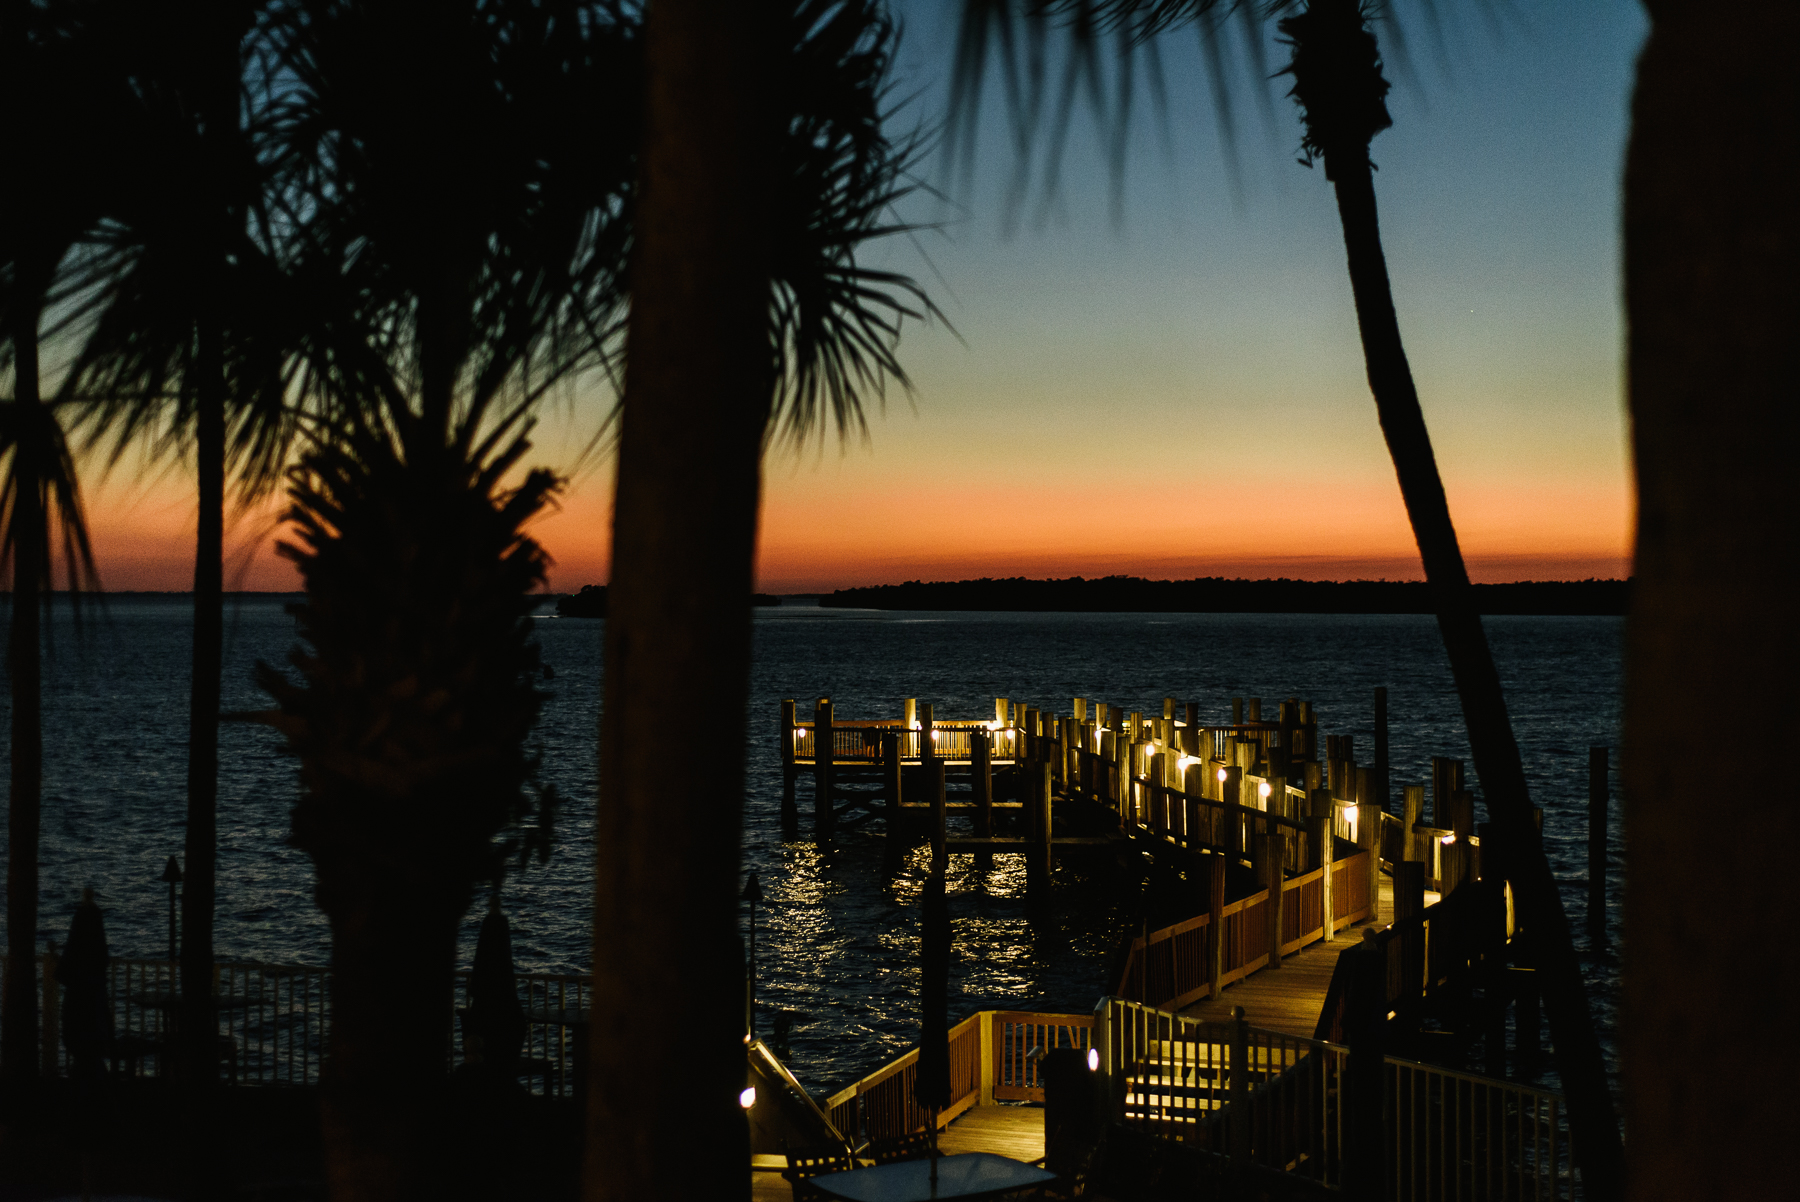 sanibel marriott sunset pier